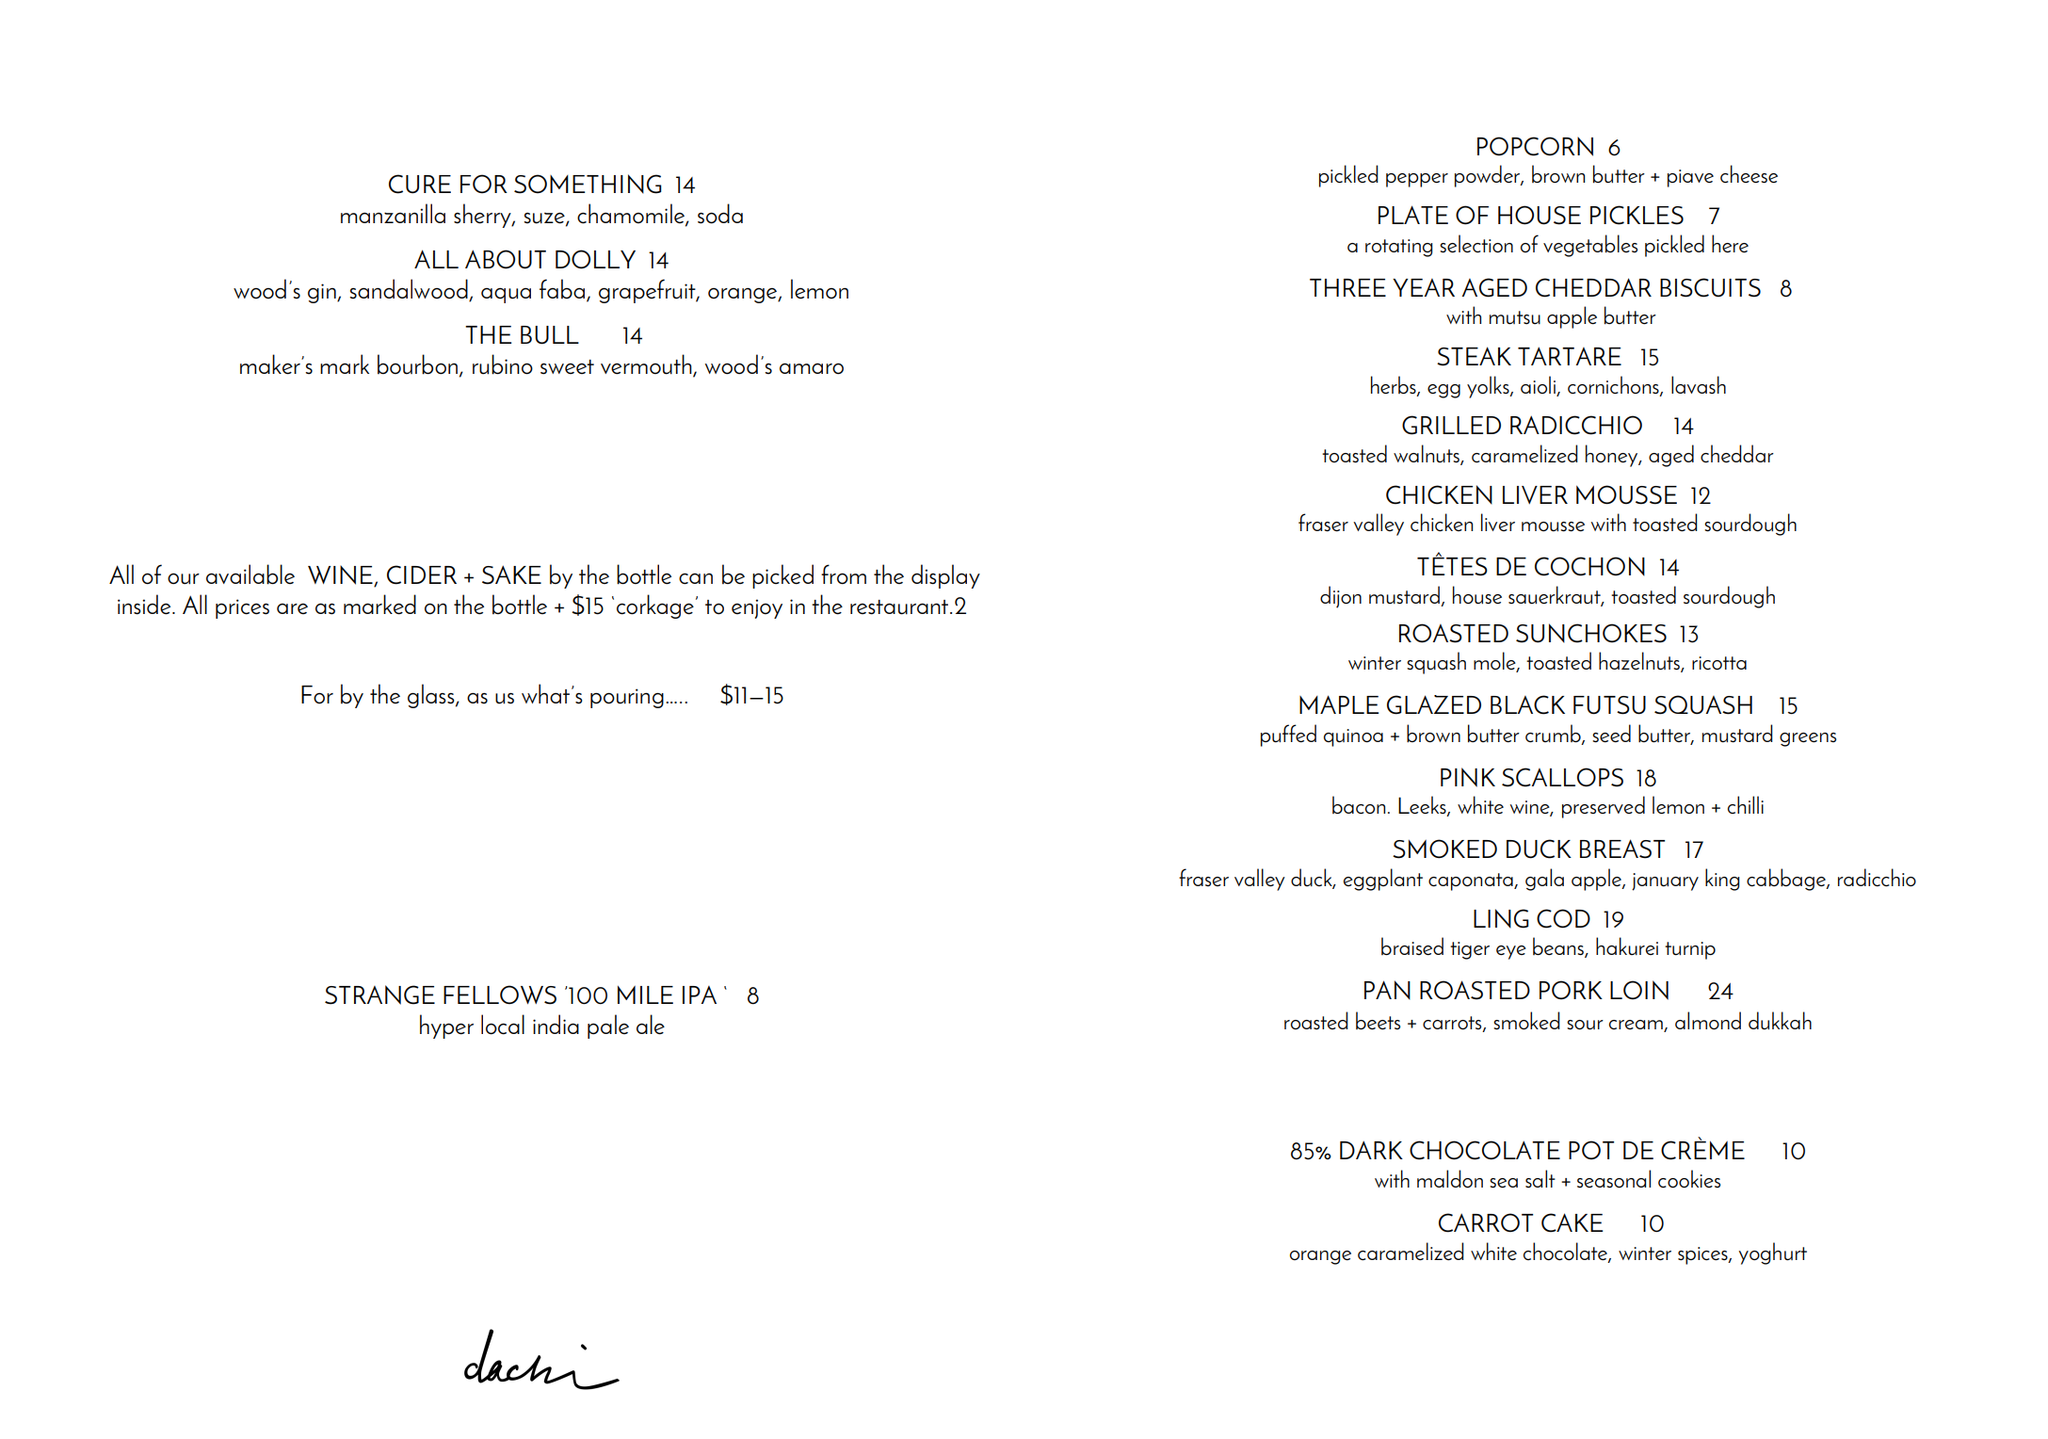 Dachi Patio Menu in Hastings Sunrise, Vancouver. Farm to table food.